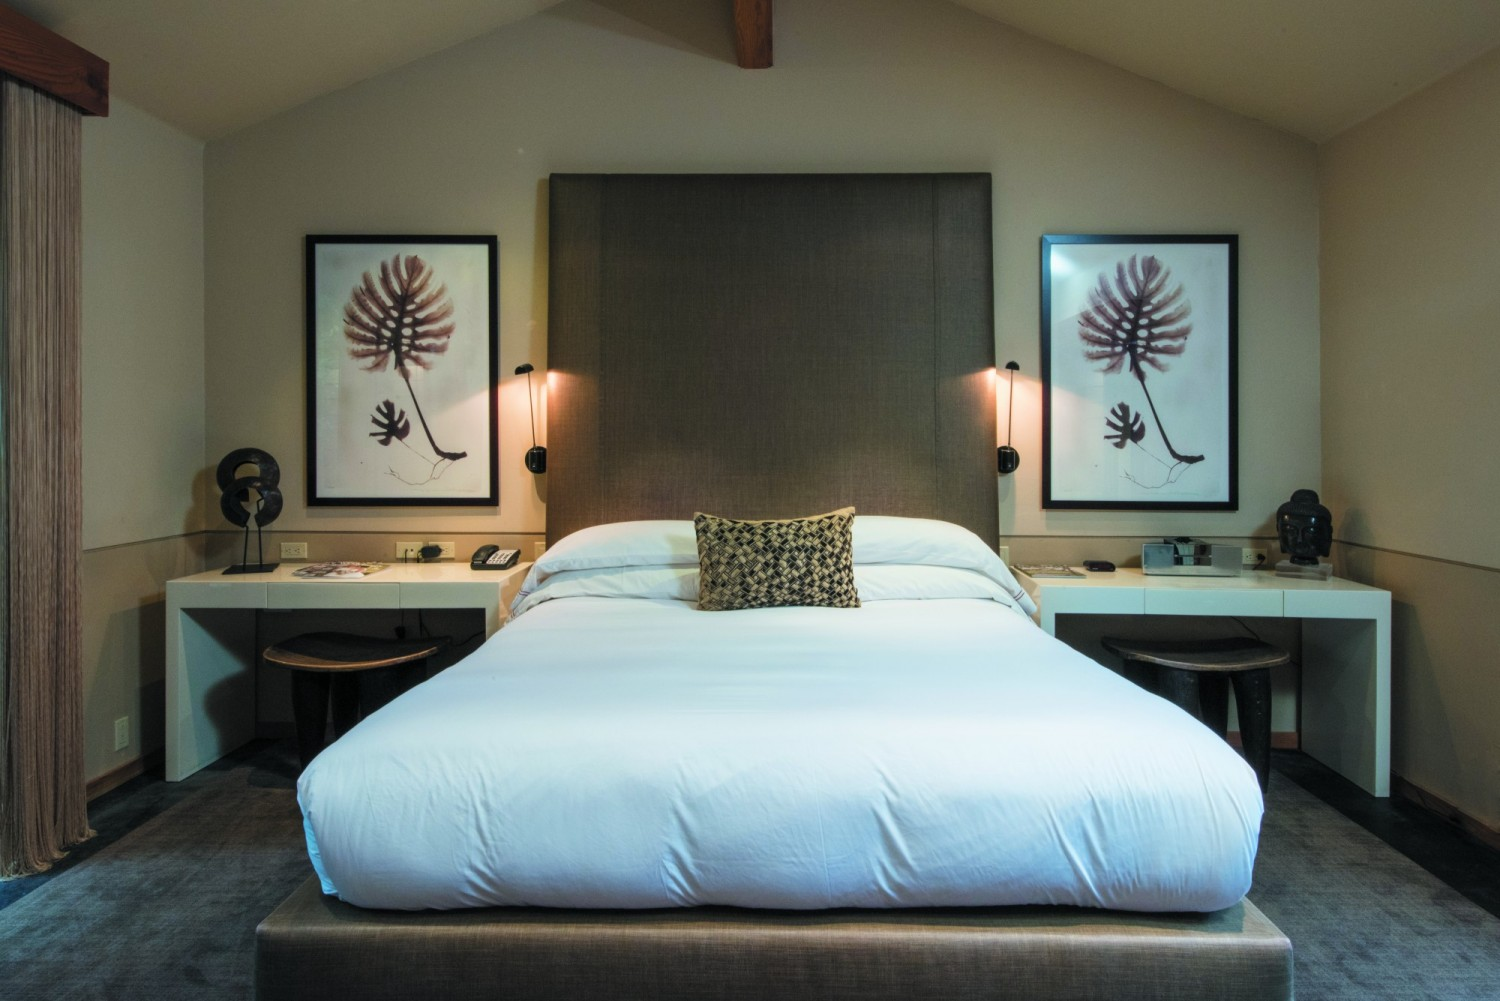 Crisp white linens and oversized pillows spell comfort for guests, whose suites are decorated with Asian woven baskets and leaf prints.